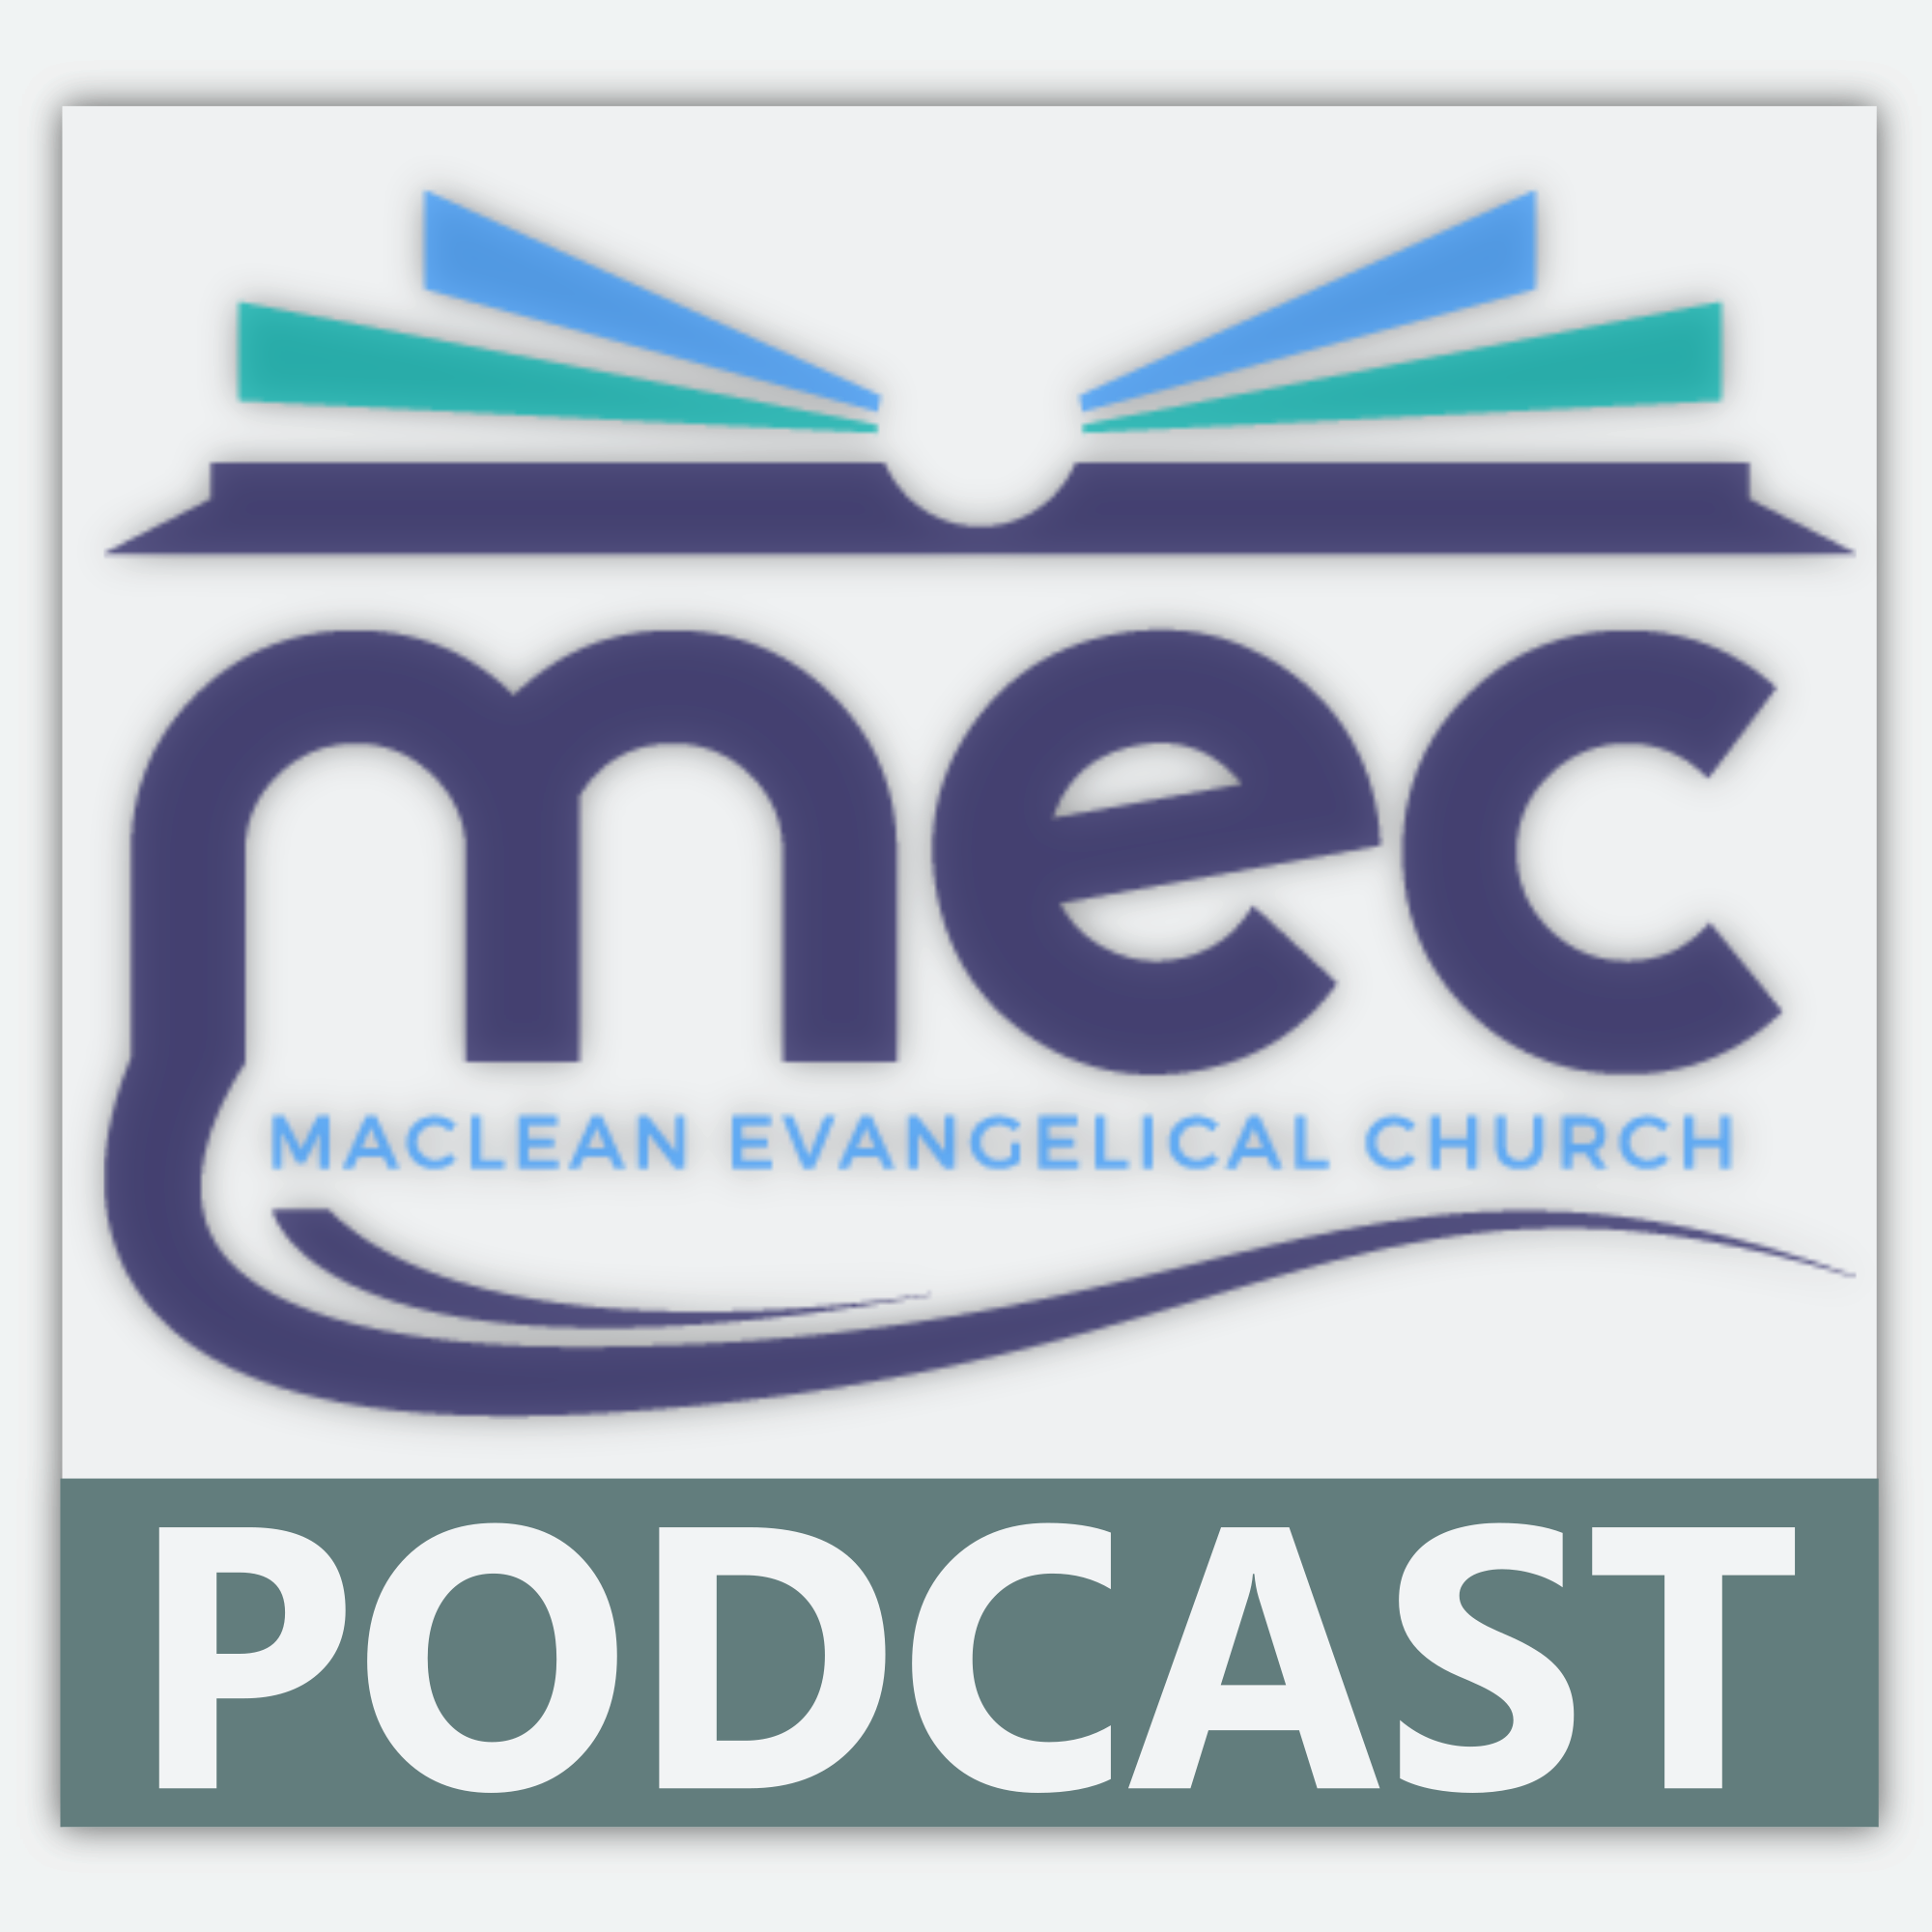 Maclean Evangelical Church - Podcast show art